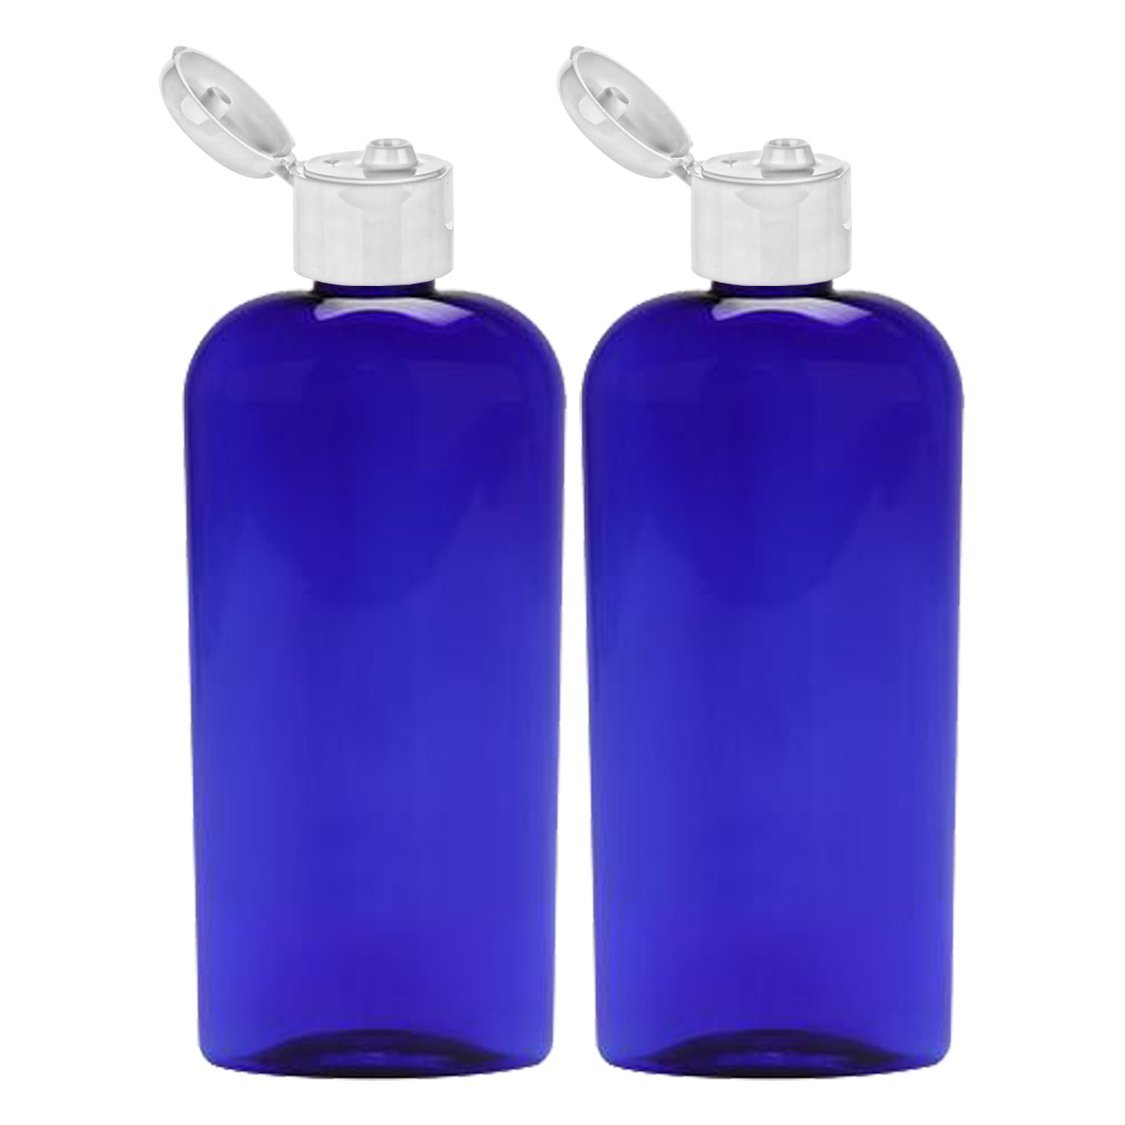 MoYo Natural Labs 8 oz Flip Cap Bottle, Empty Containers for Shampoo or Lotions, BPA Free PET Plastic Squeezable Toiletry/Cosmetic Bottles (2 pack, Cobalt Blue)